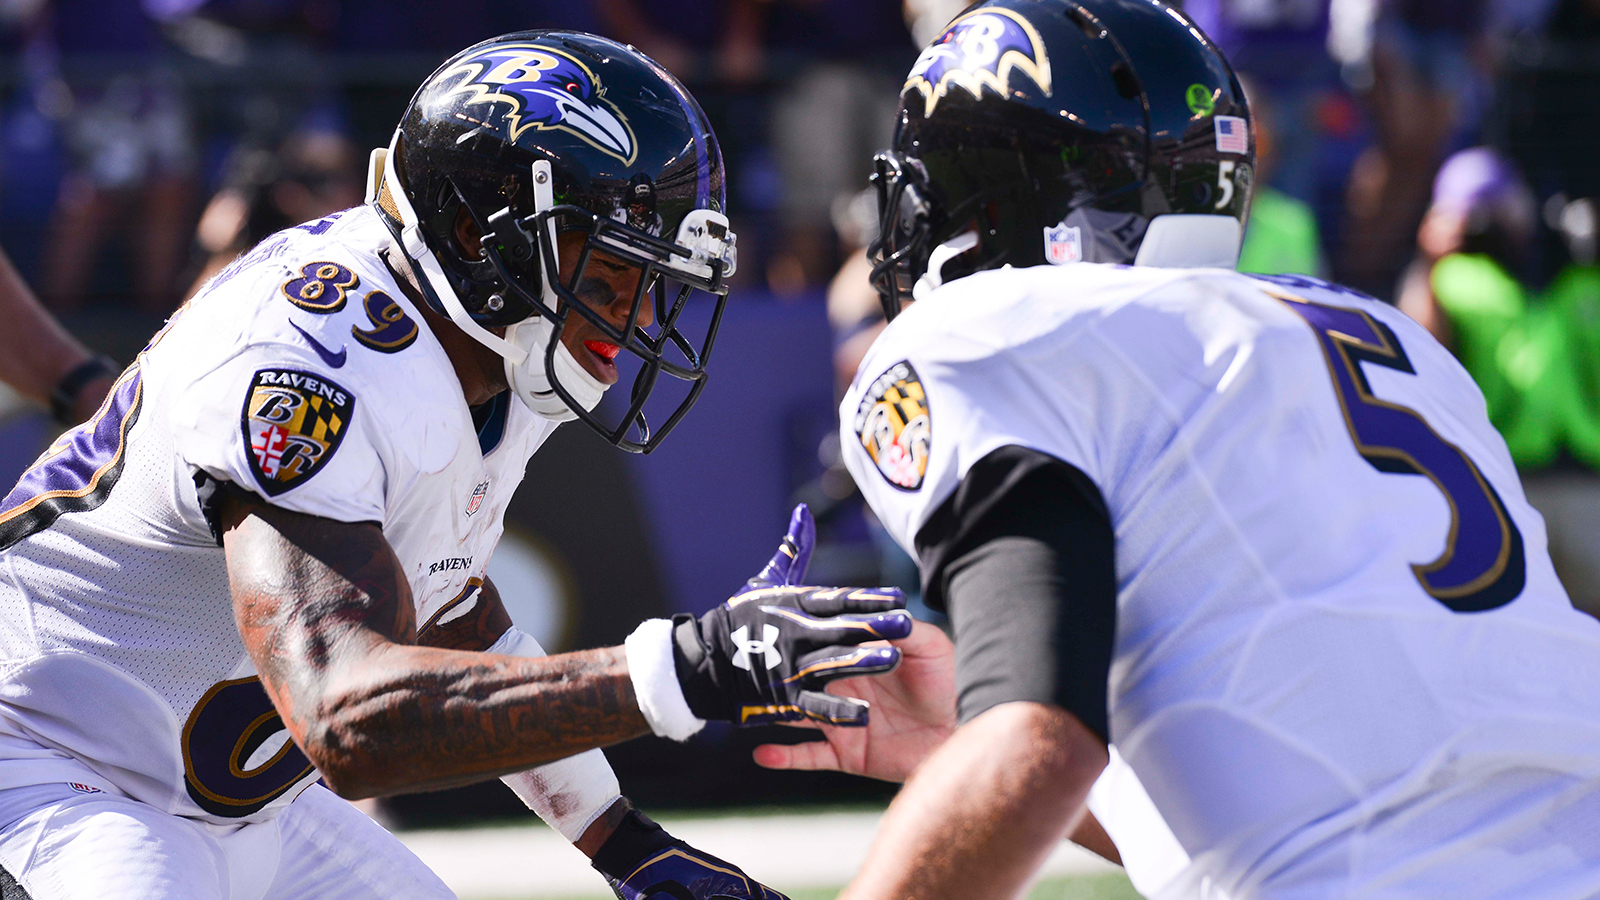 Ravens will look to throw more deep balls against Oakland